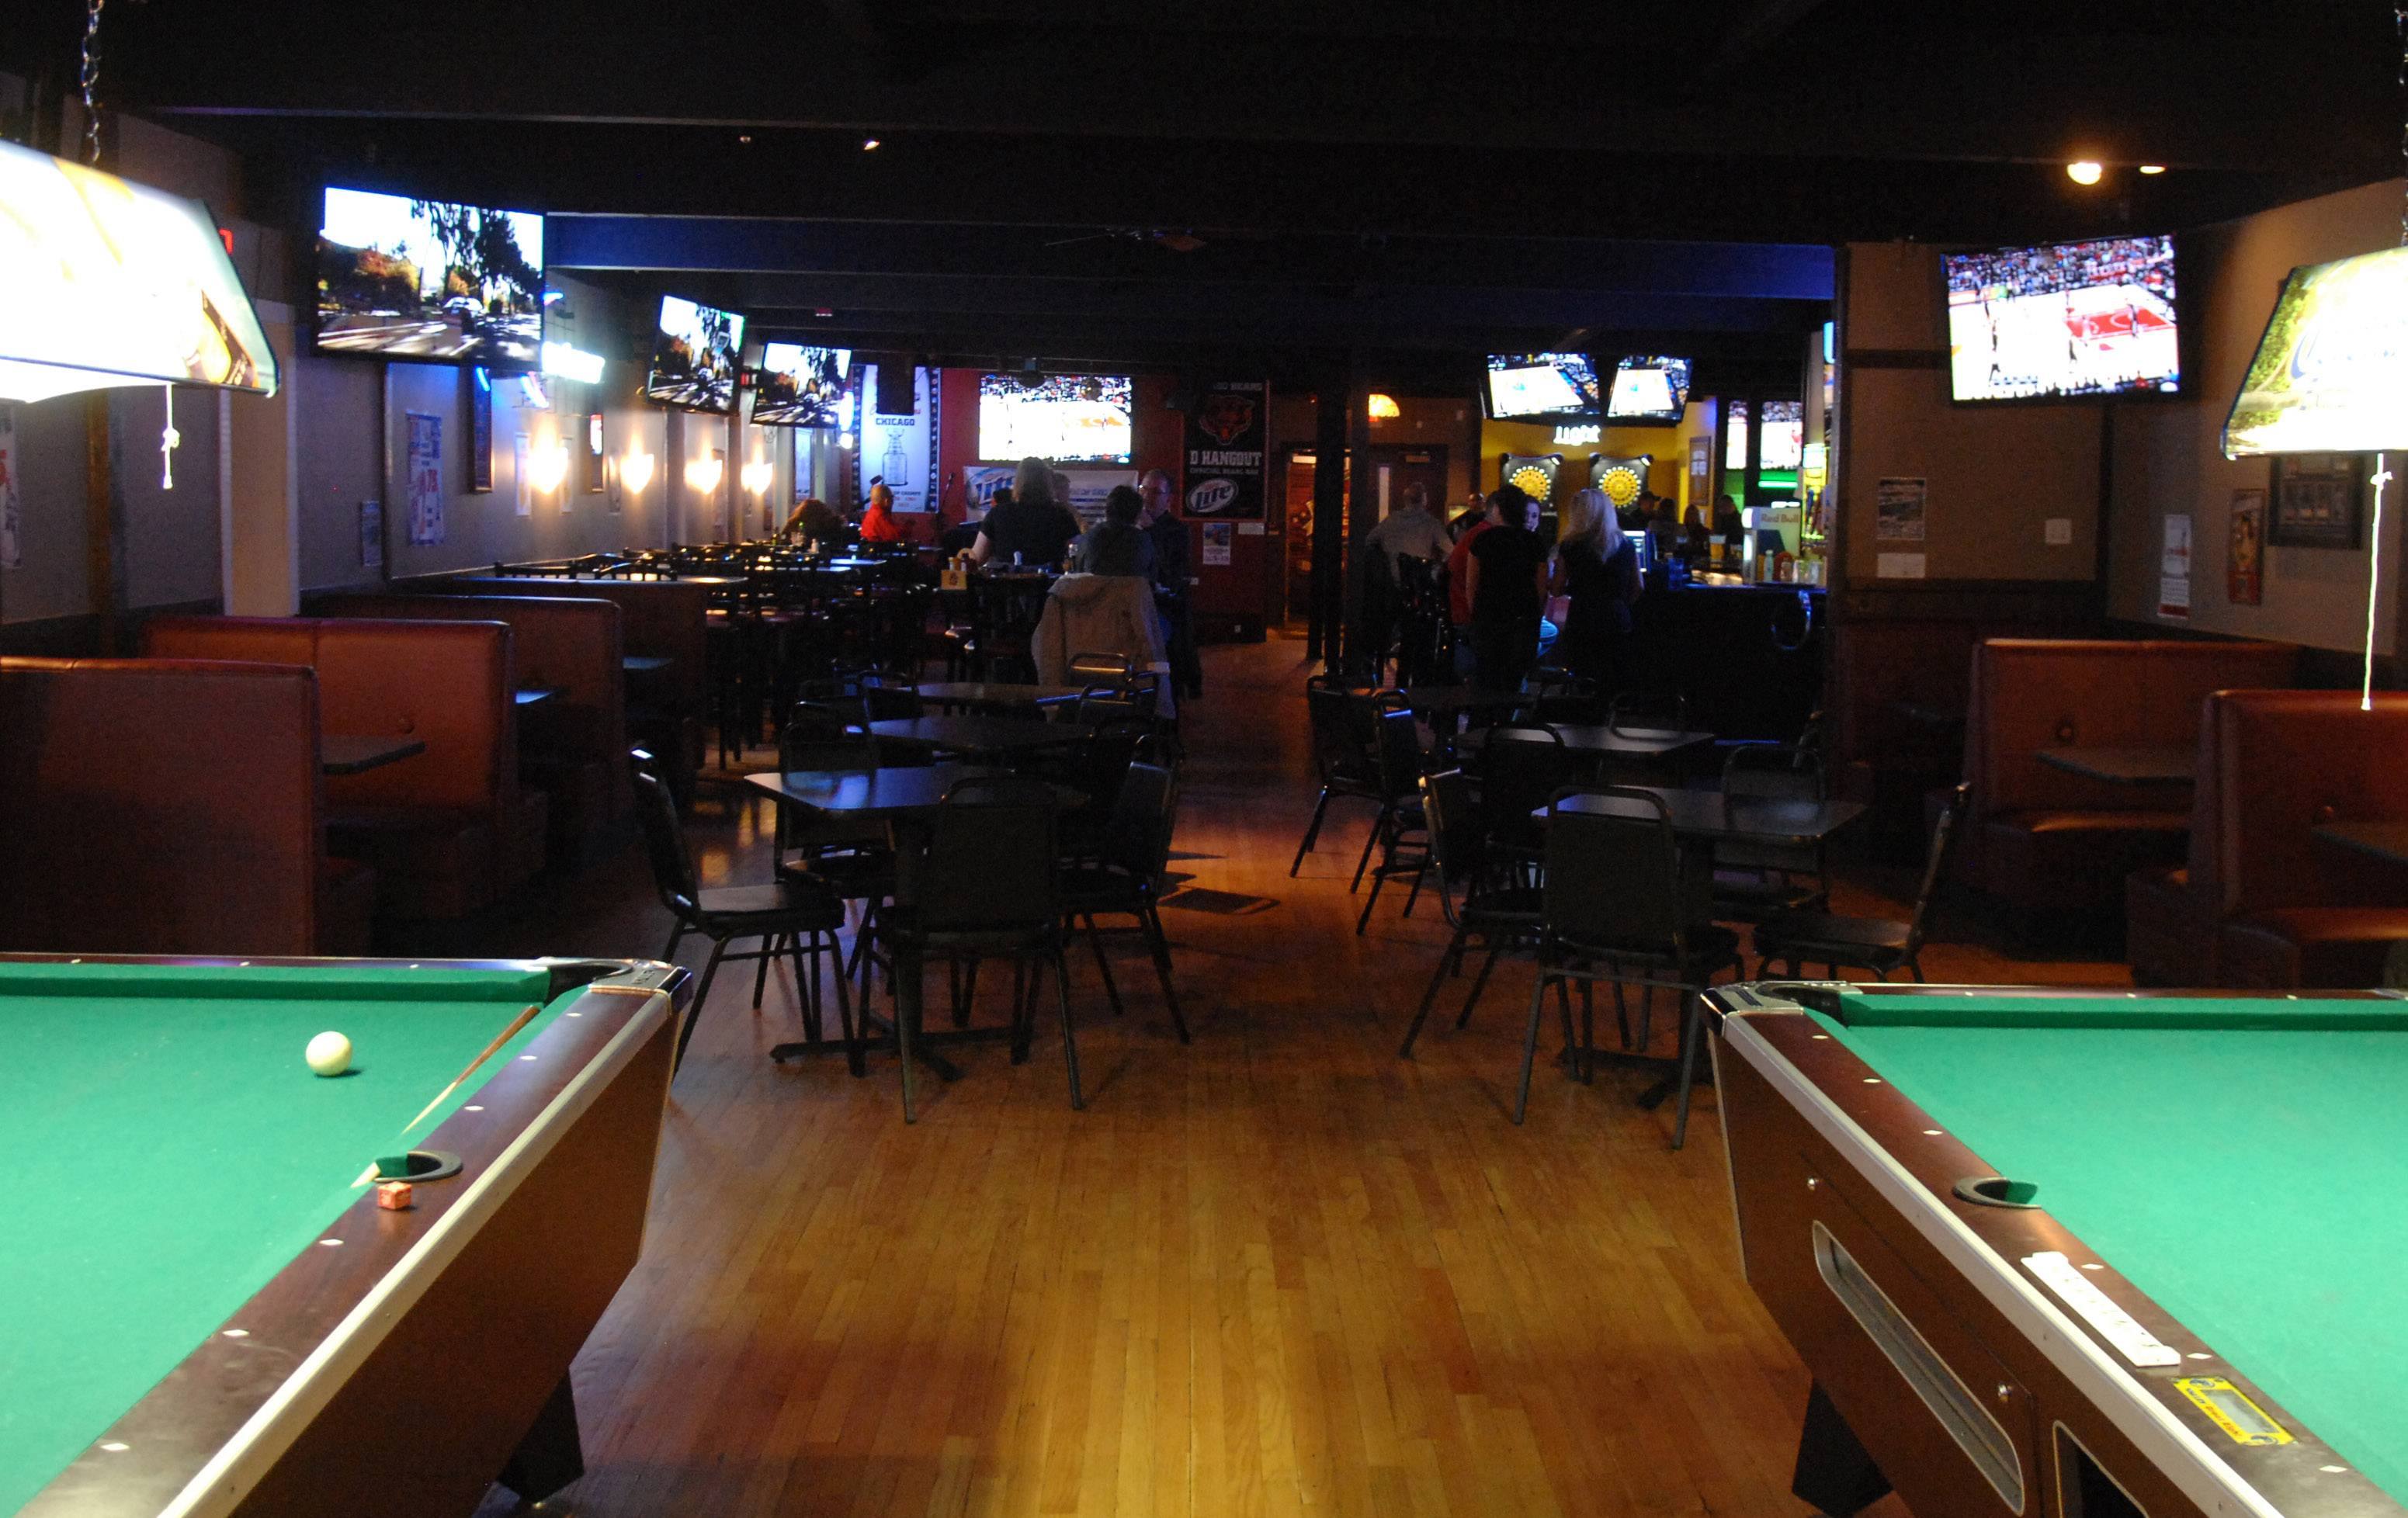 D Hangout Bar and Grill in Elgin offers pool as well as video games.